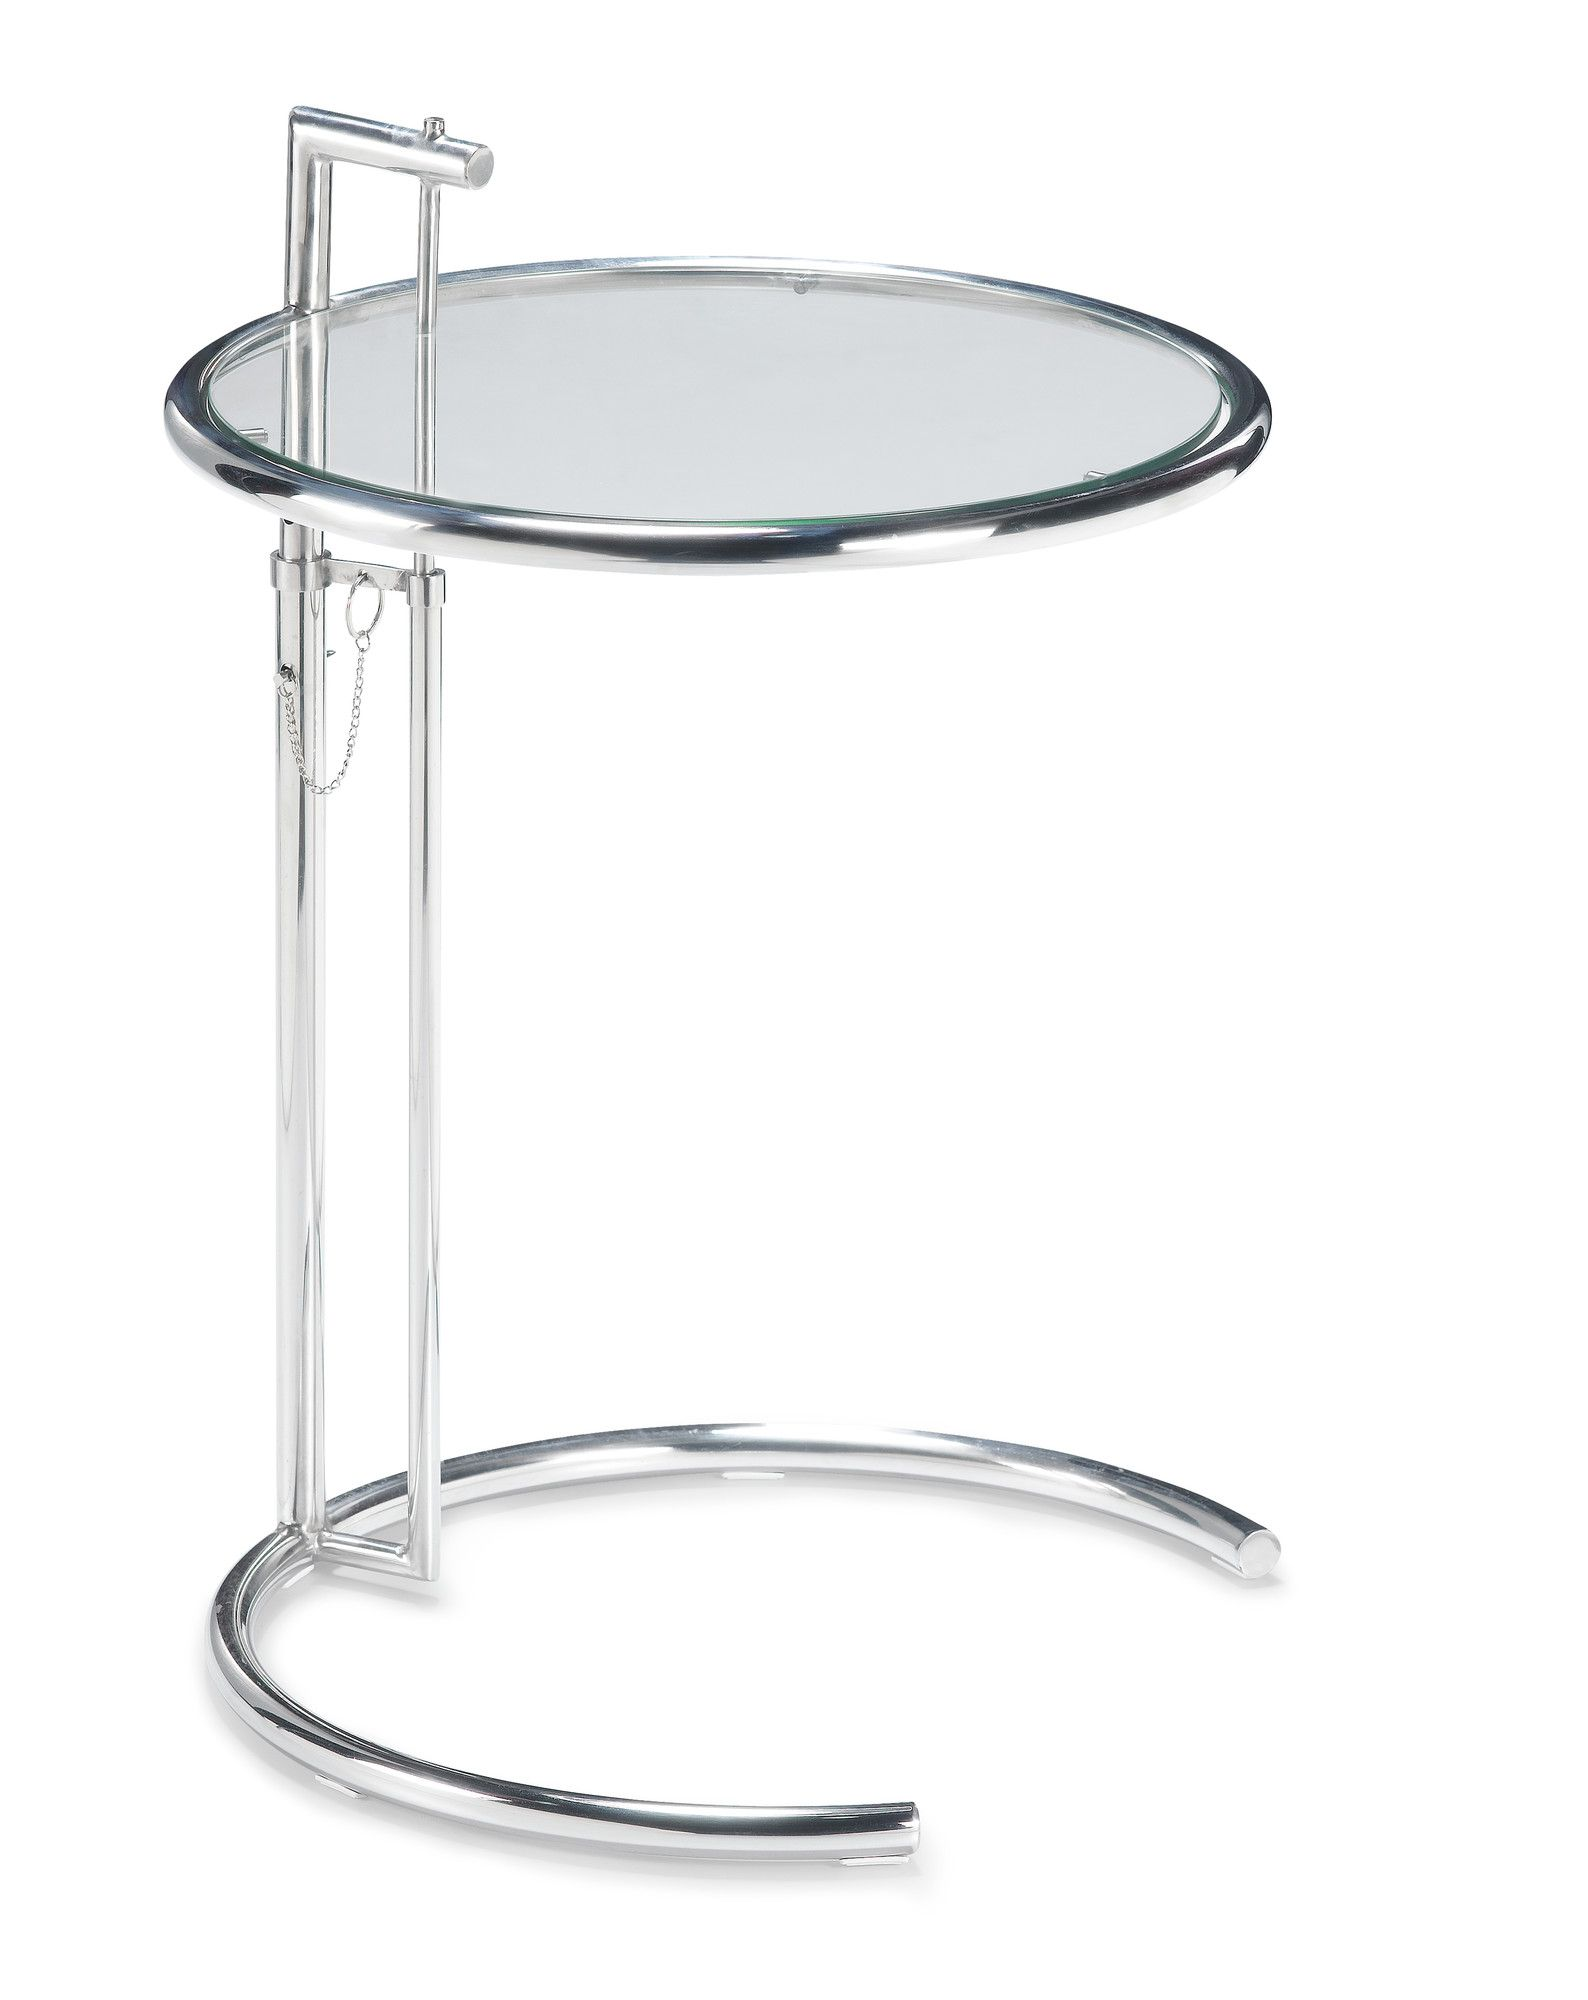 Eileen Gray Table Eileen Gray Replica Adjustable E1027 Side Table In 2019 Wharf